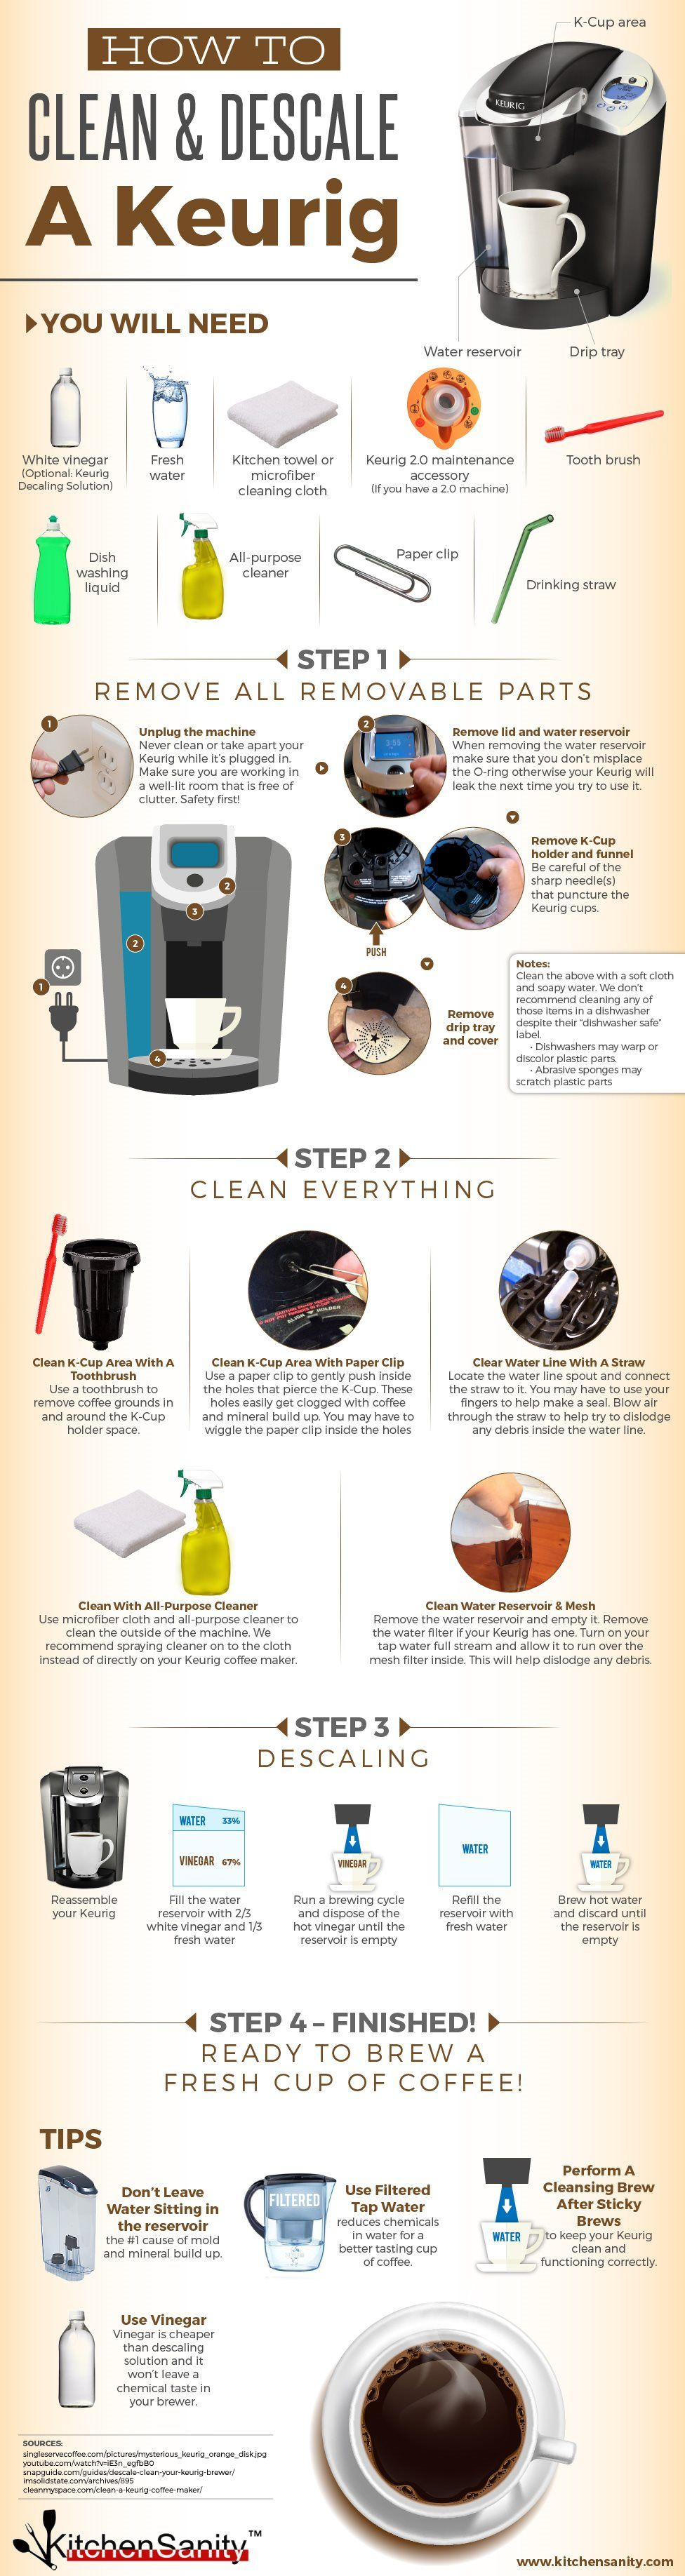 How to clean and descale a keurig keurig coffee maker